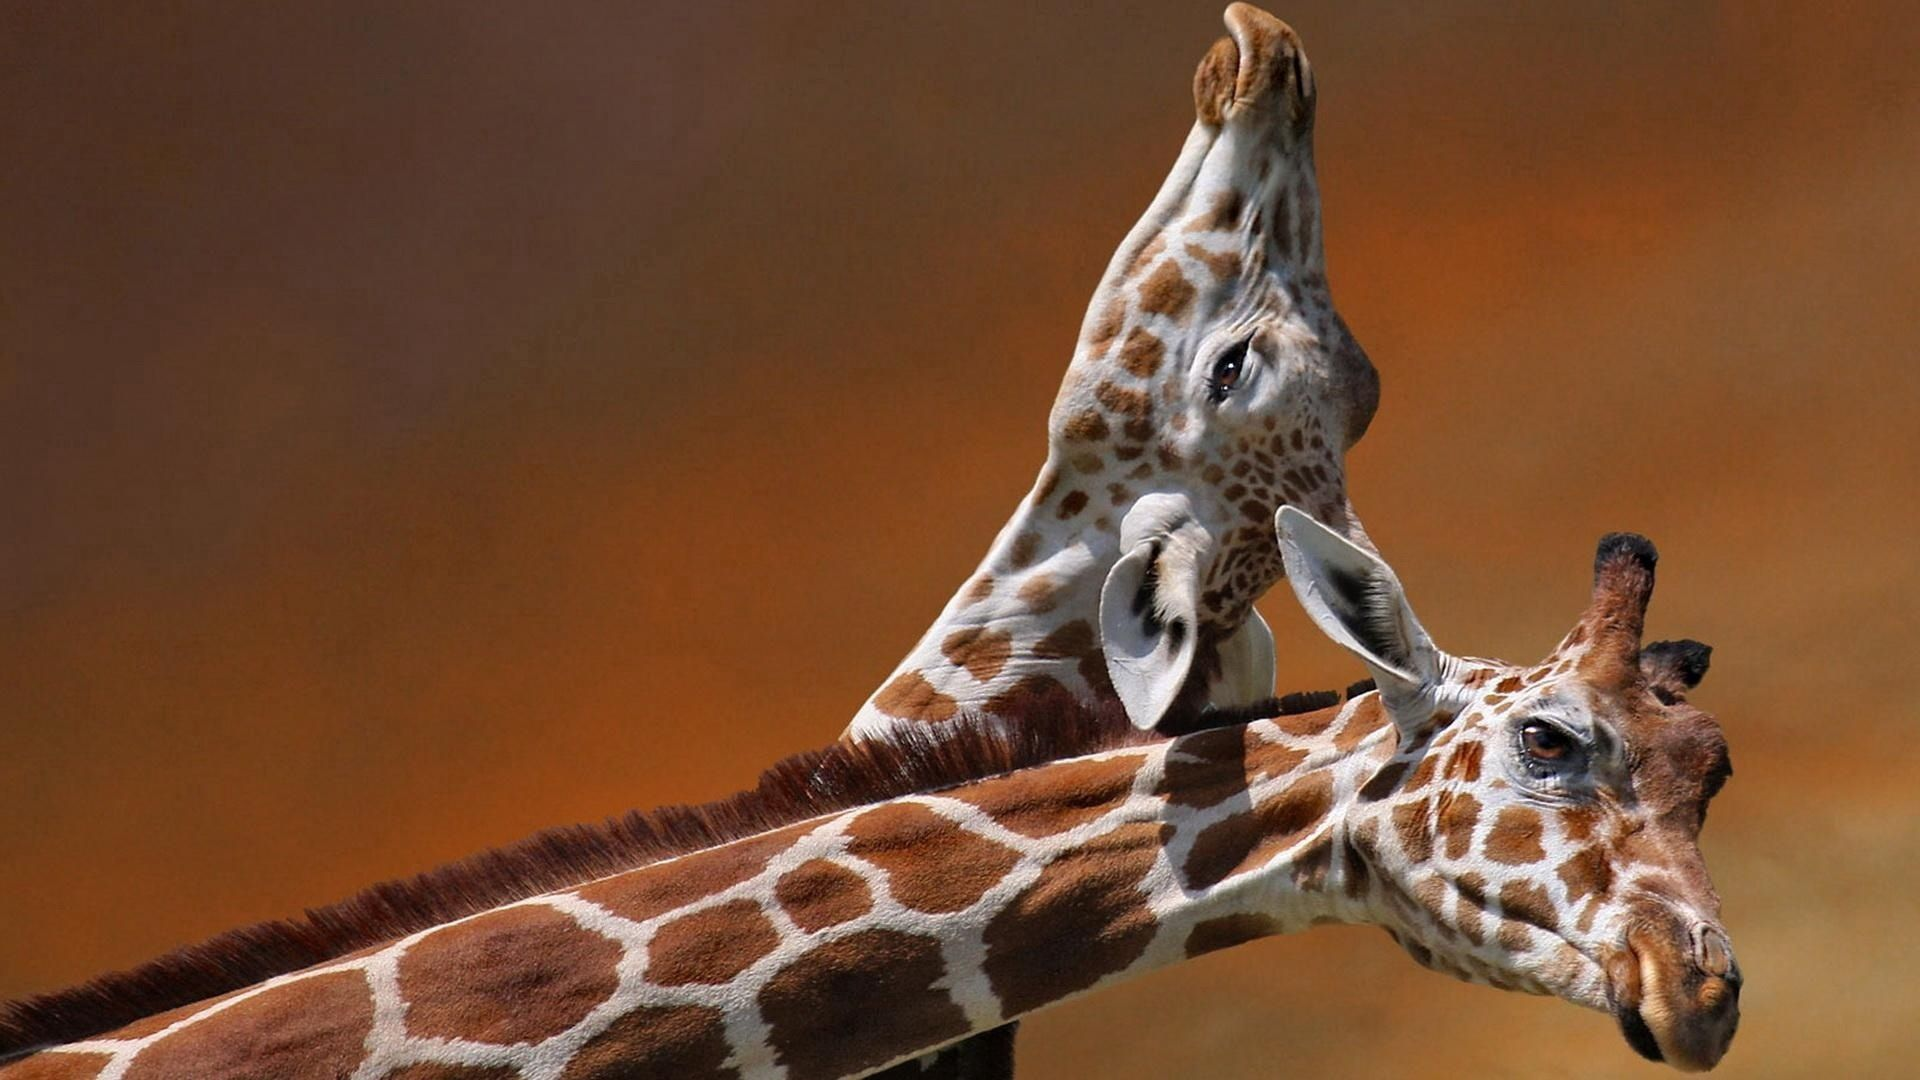 127948 download wallpaper Animals, Couple, Pair, Care, Spotted, Spotty, Head, Giraffes screensavers and pictures for free